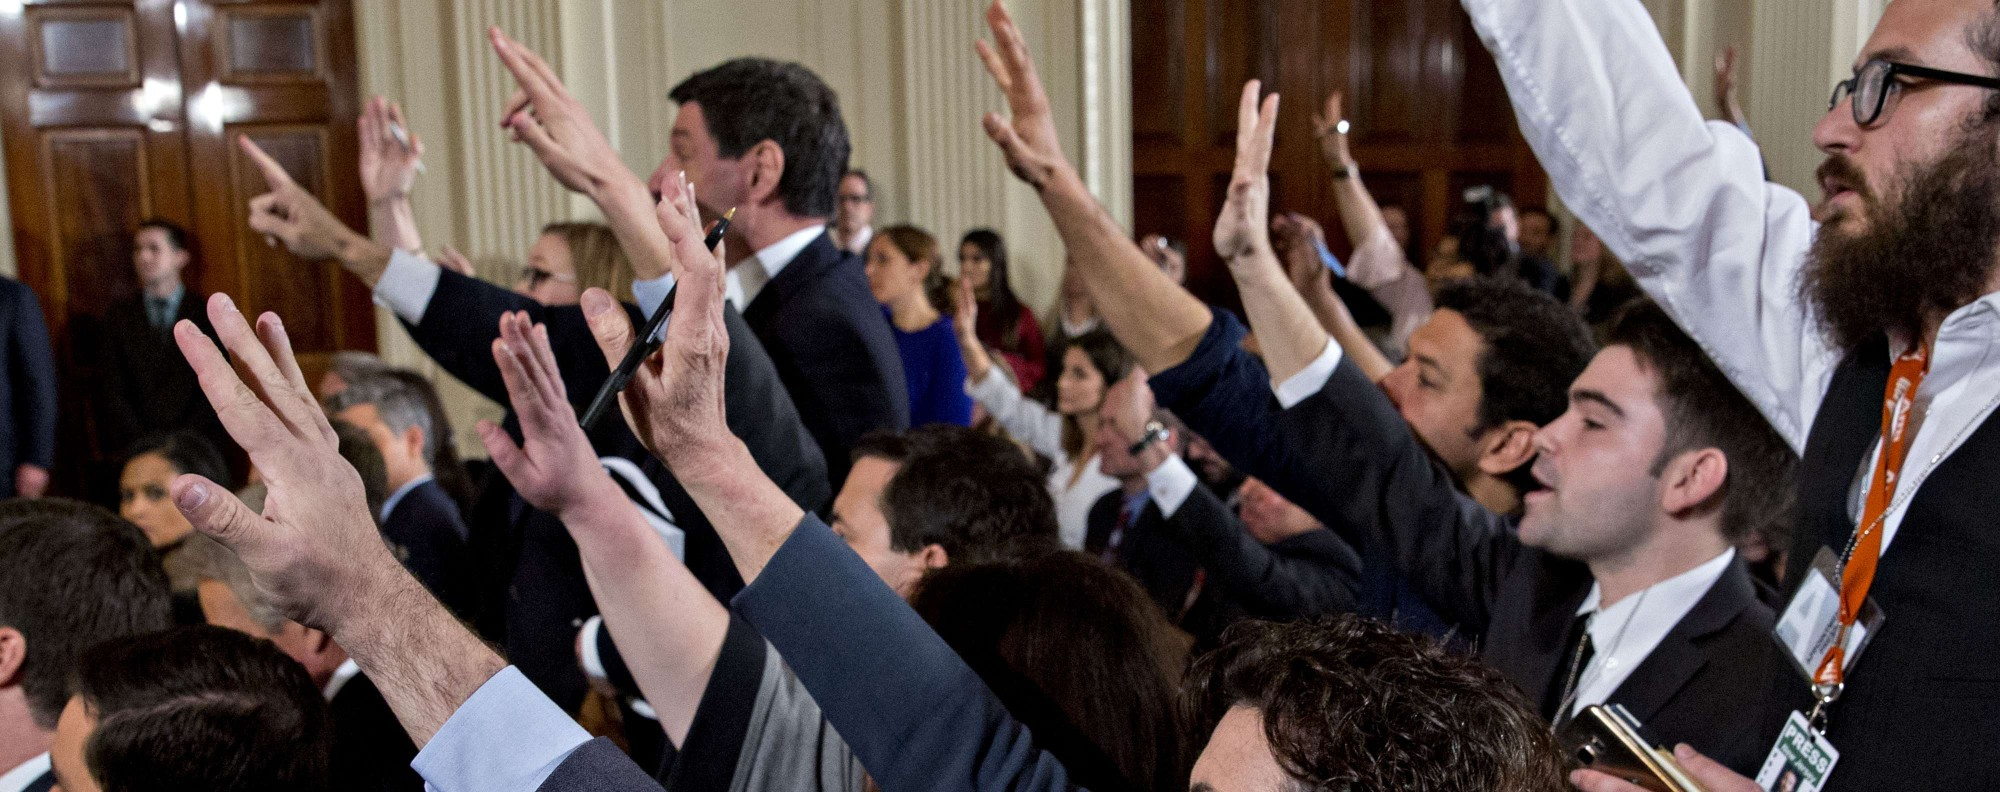 Members of the media question Donald Trump. Photo: Bloomberg